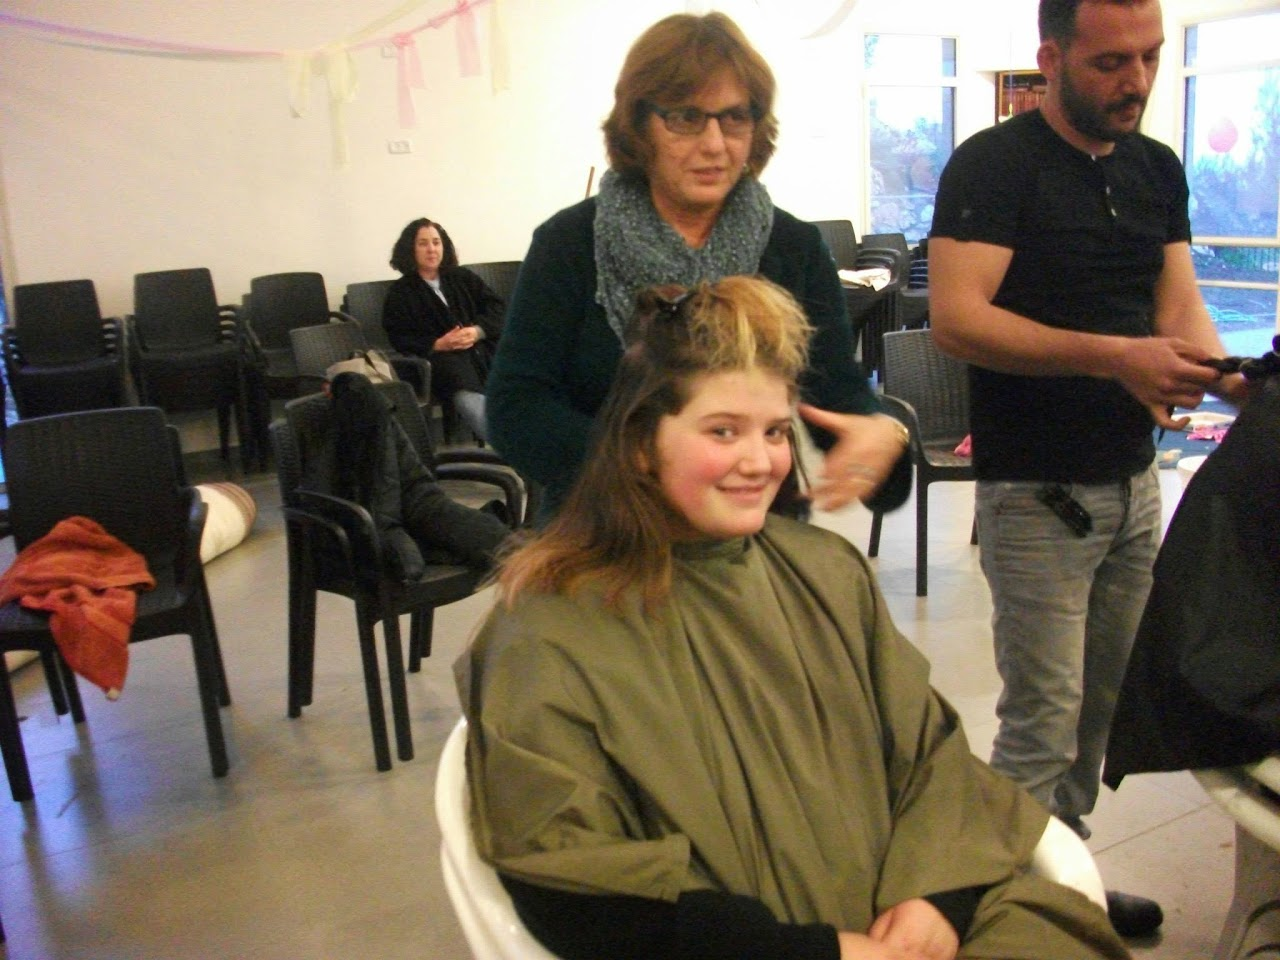 Donating hair for cancer patients 2014  - 1912326_539677726148525_1373581139_o.jpg